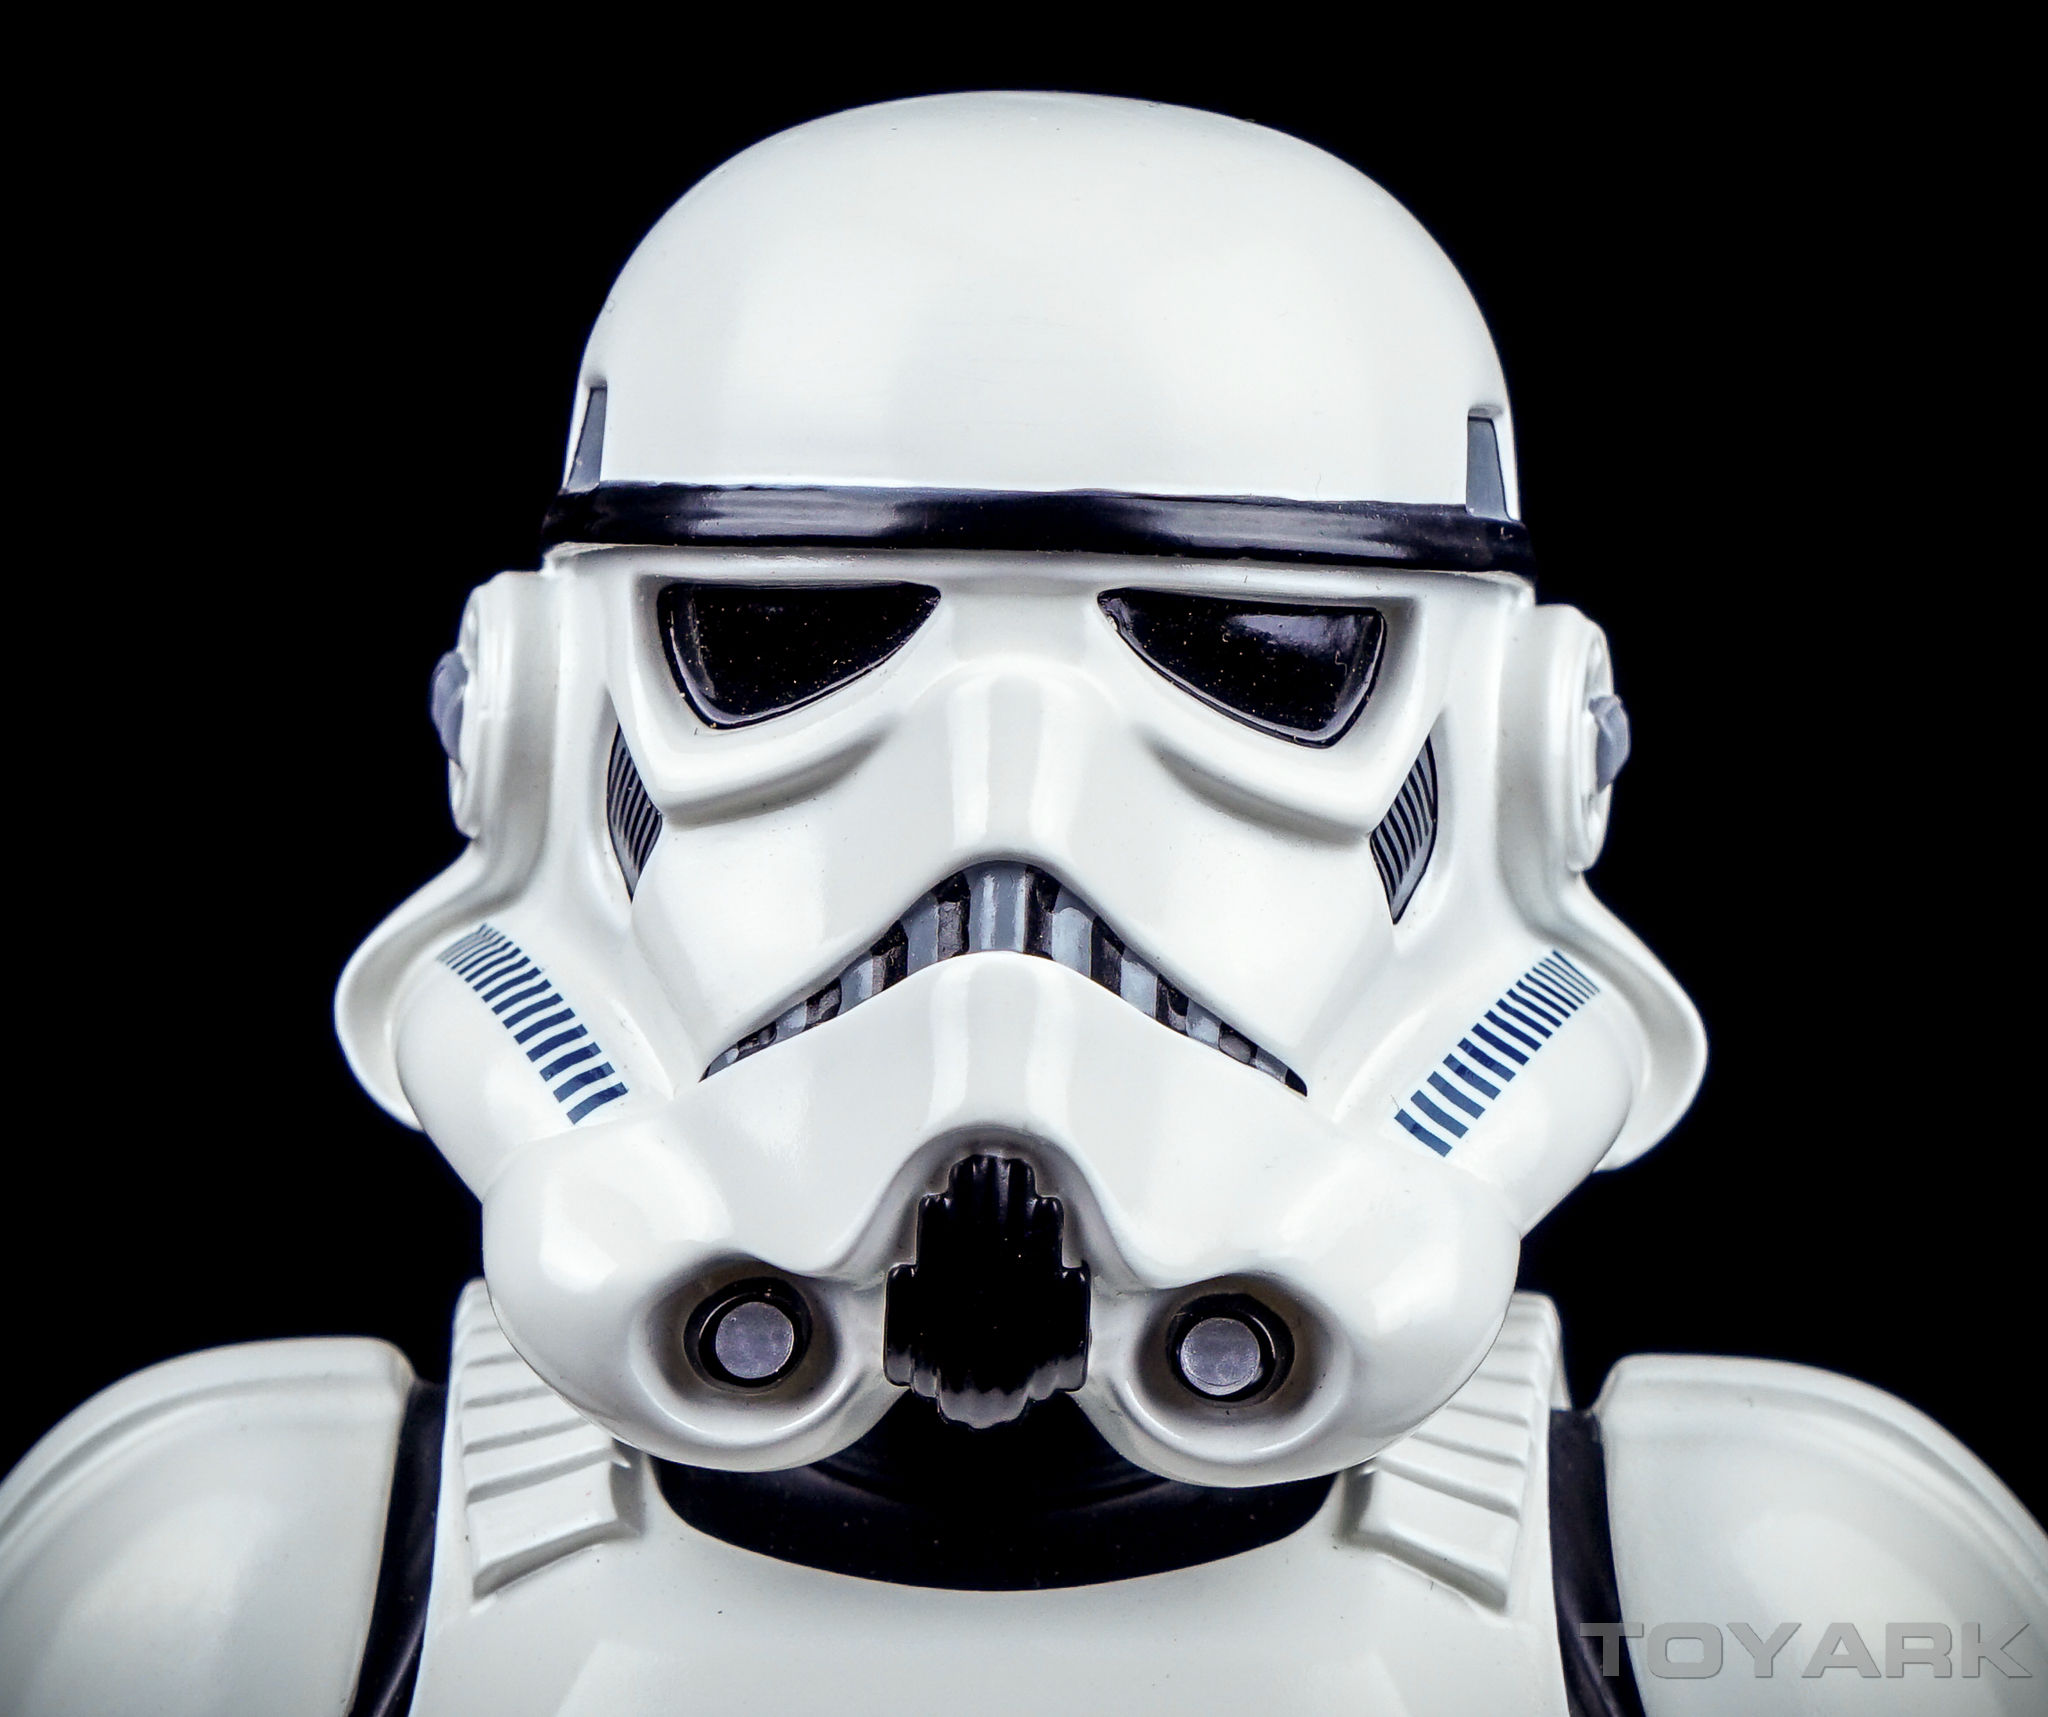 http://news.toyark.com/wp-content/uploads/sites/4/2016/04/Star-Wars-Stormtrooper-GS-Bust-018.jpg